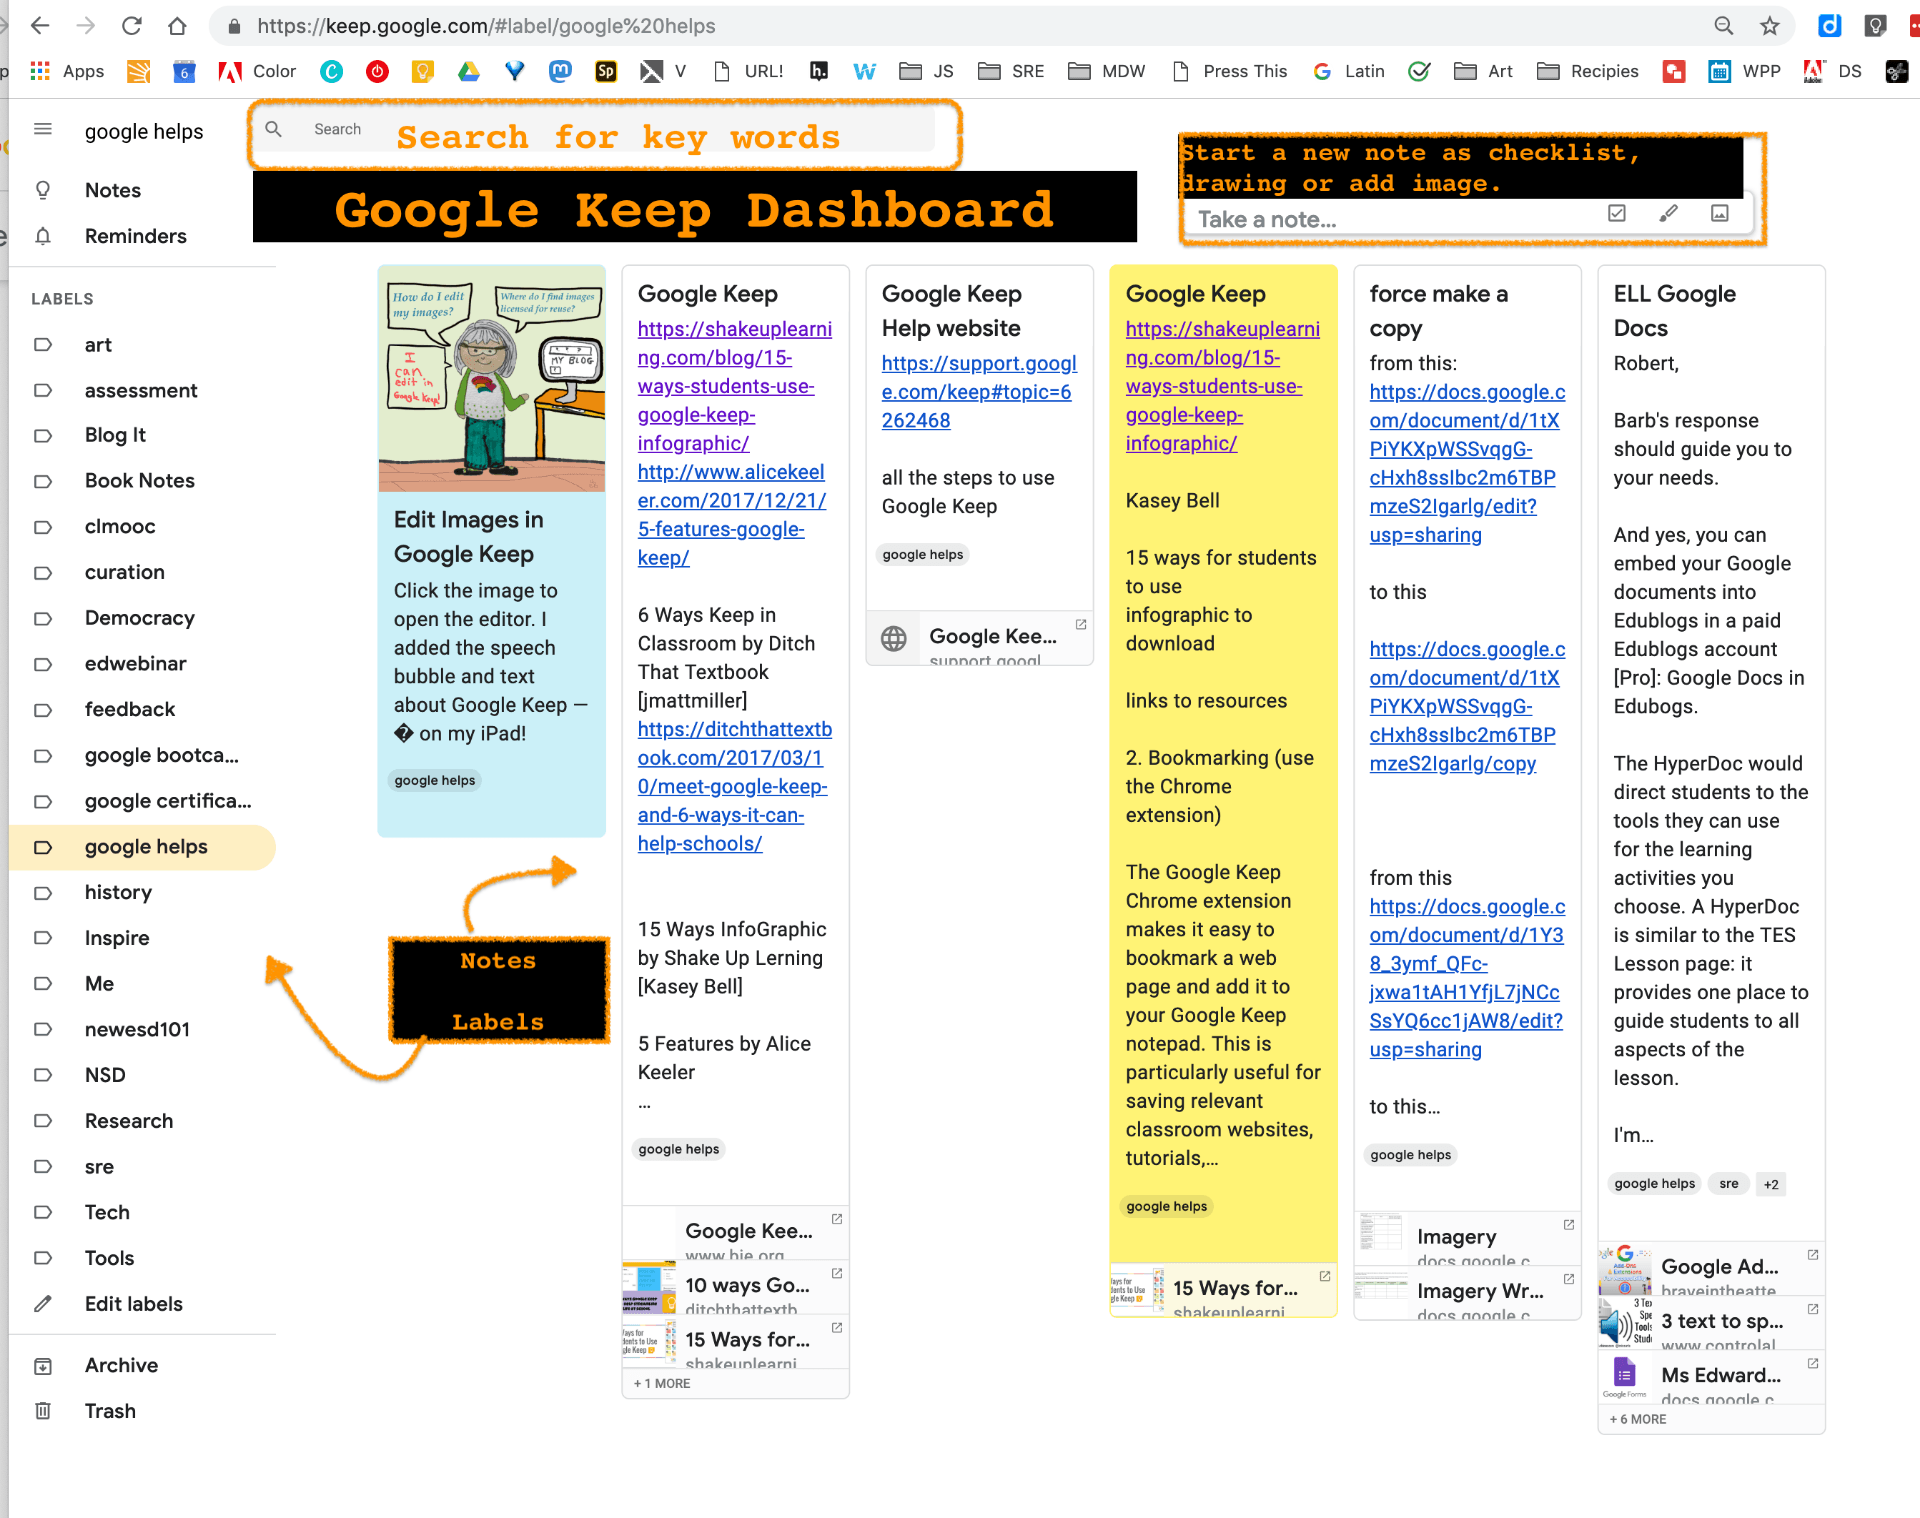 Curation Part 6 Google Keep | What Else